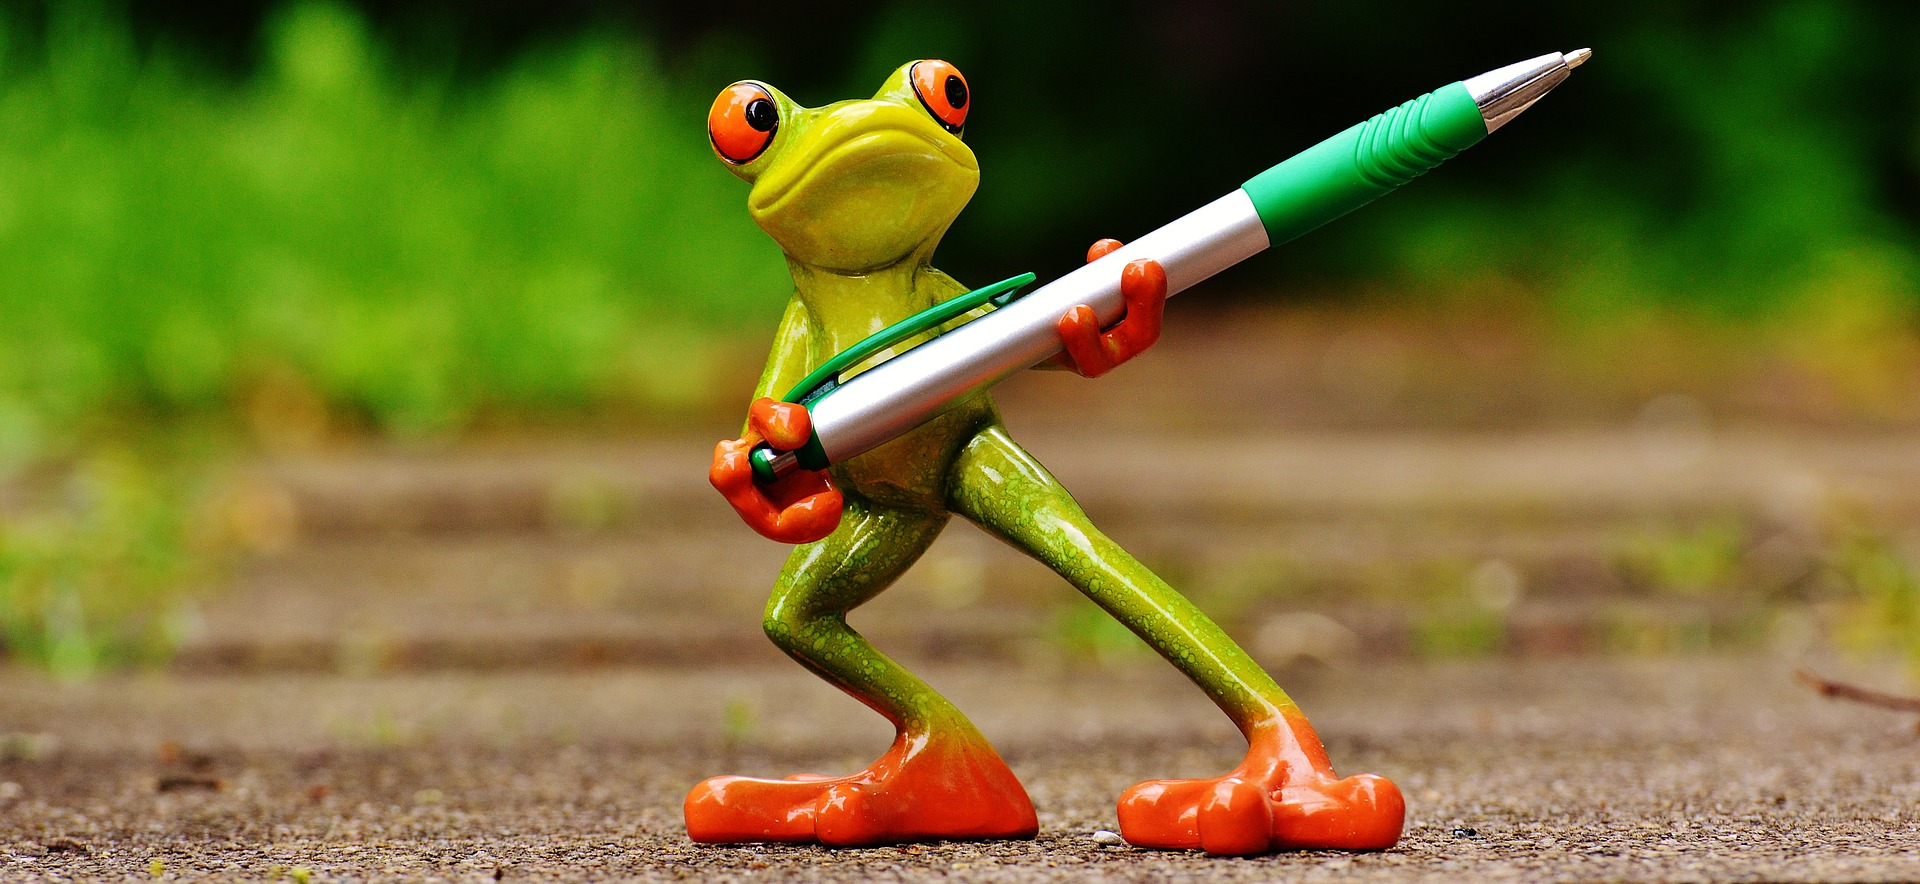 Frog holding a pen as a creative representation of transcreation